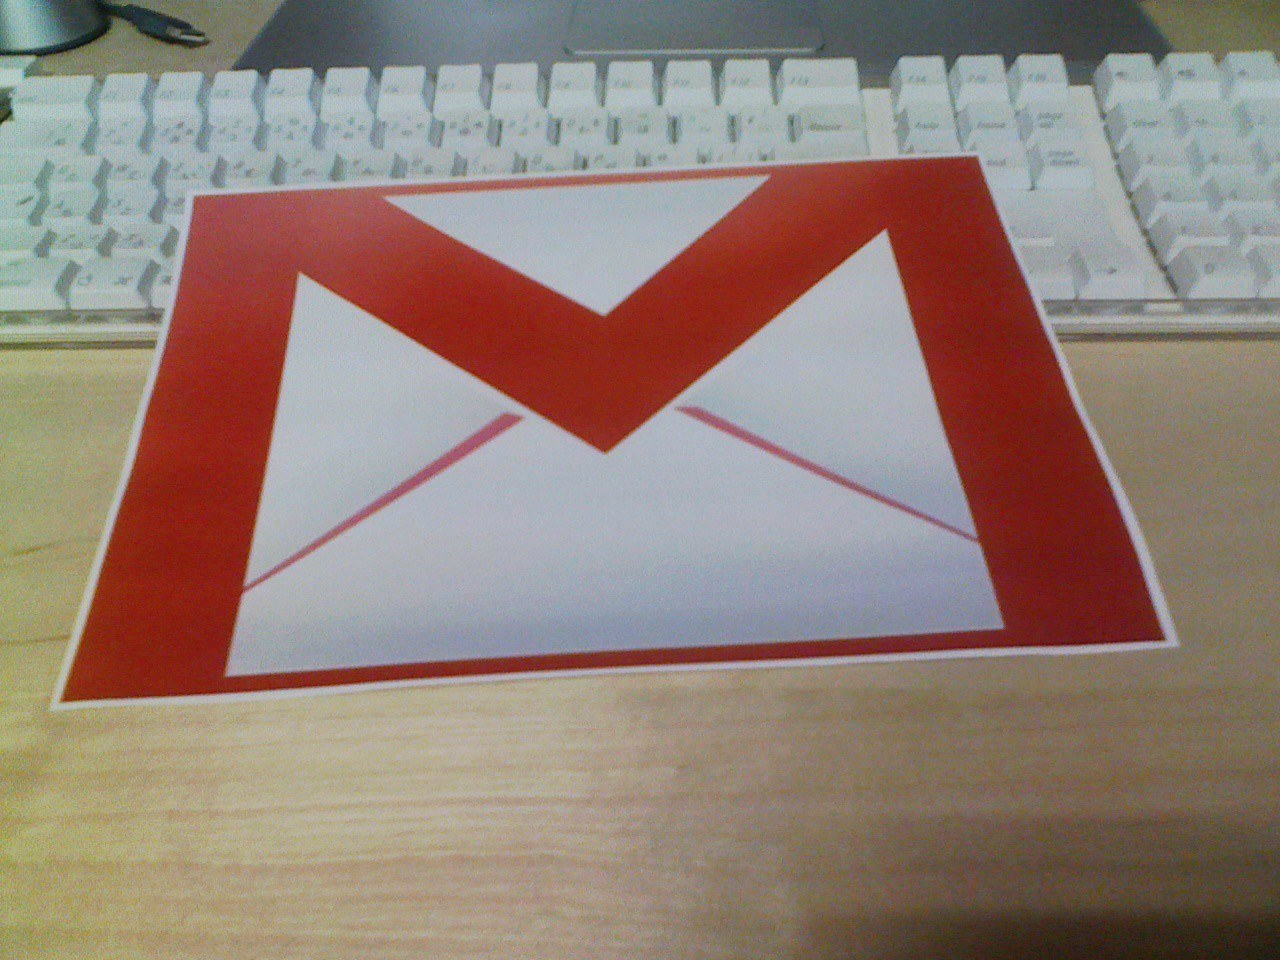 Google Quickly Resolves a Major Gmail Phishing Scam